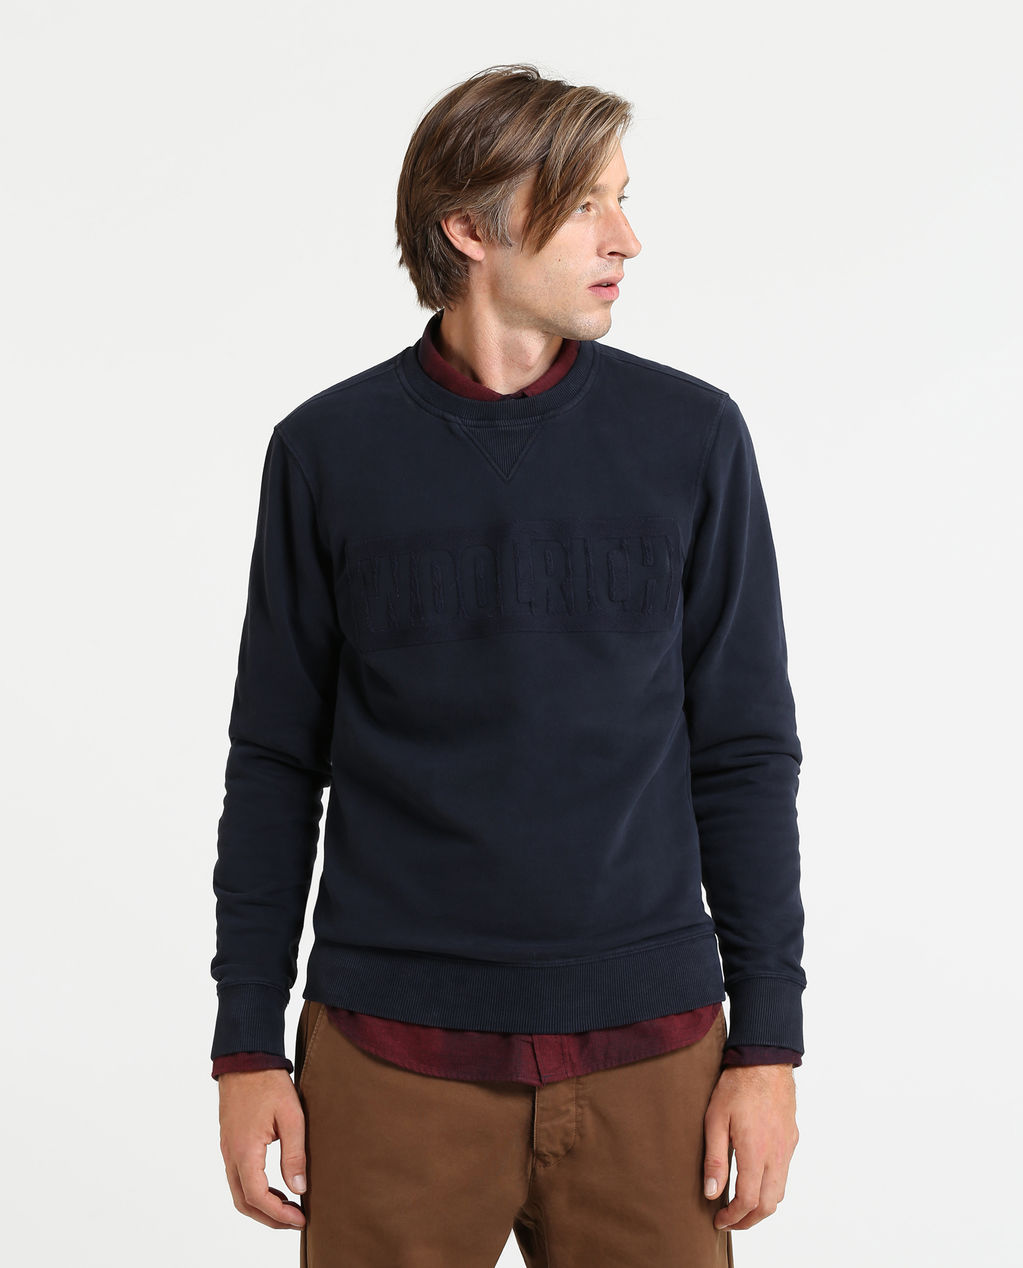 Logo Crew Neck MELTON BLUE B